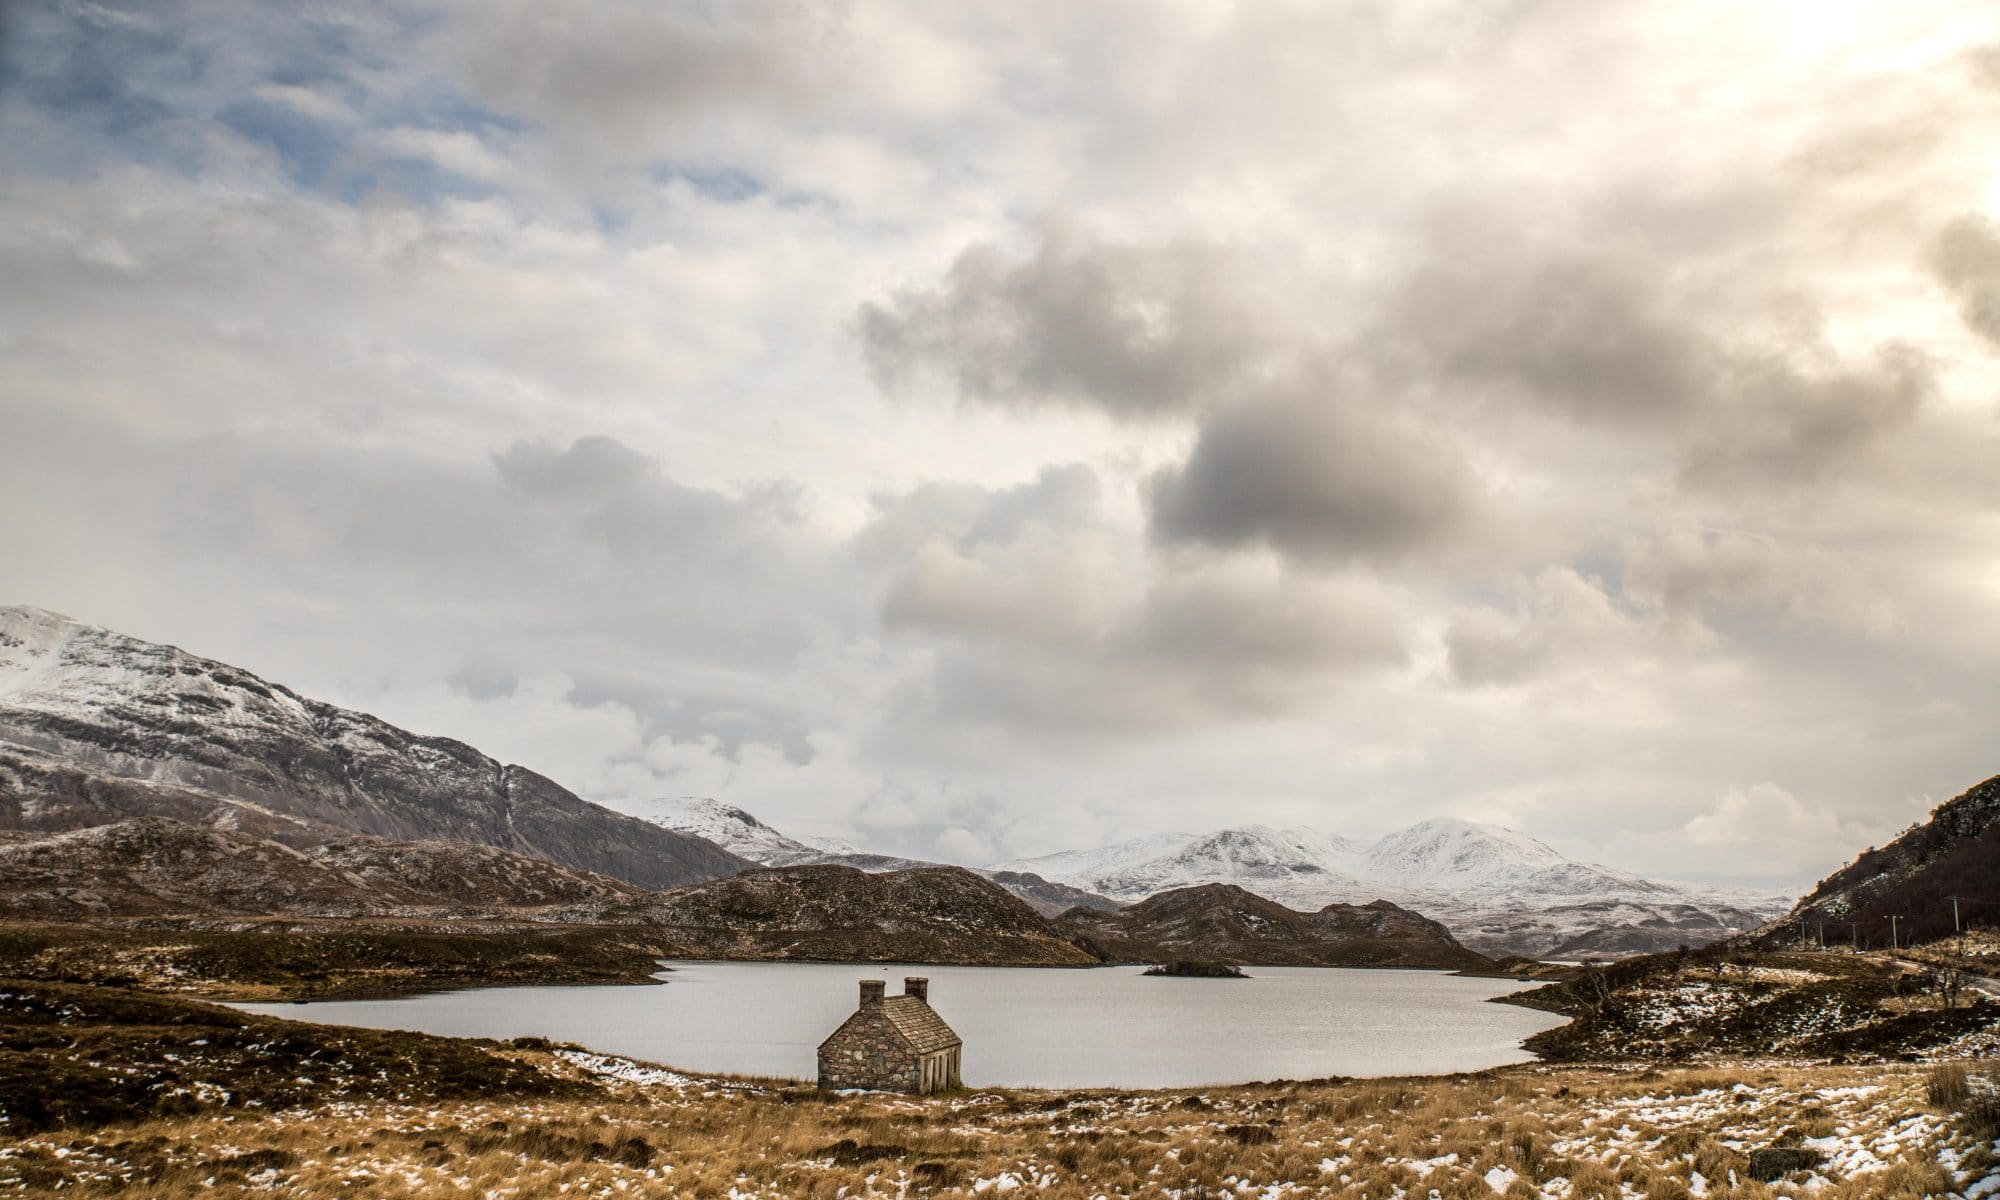 the-little-house-on-the-banks-of-the-loch-sir-edwards-roadtrip